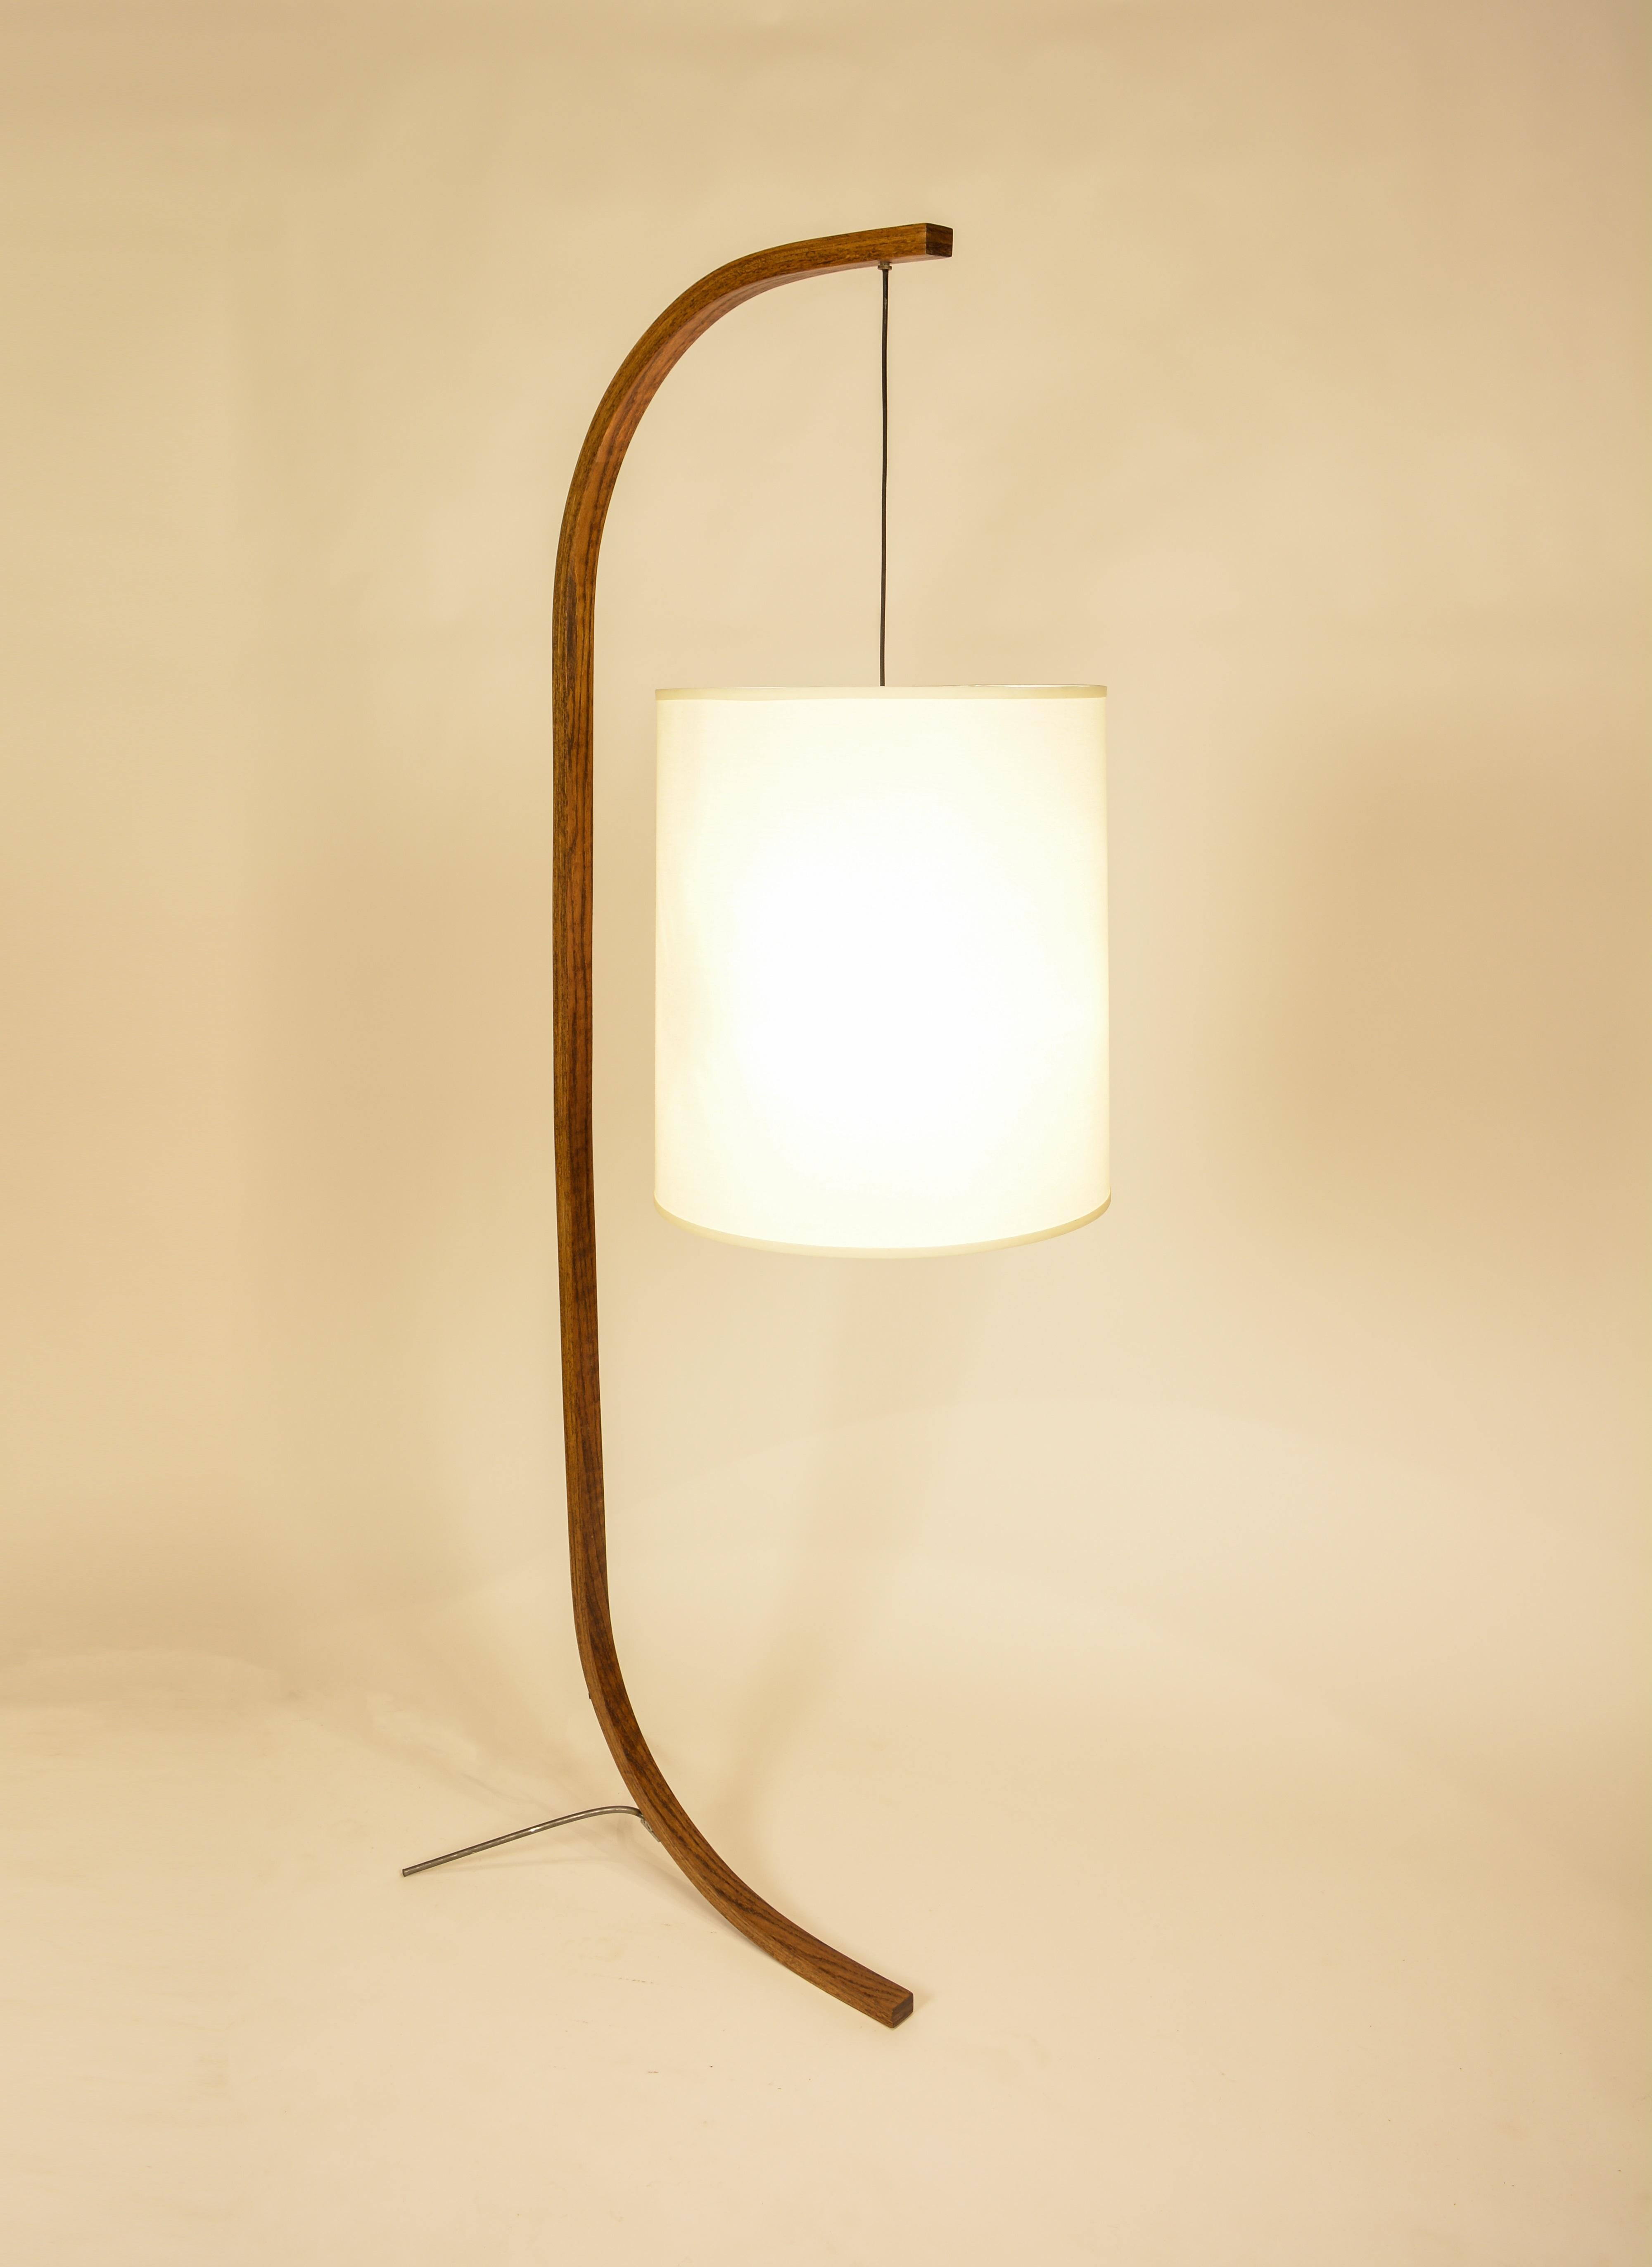 Pion - Wooden Floor Lamp with Steel Legs, 'Large'